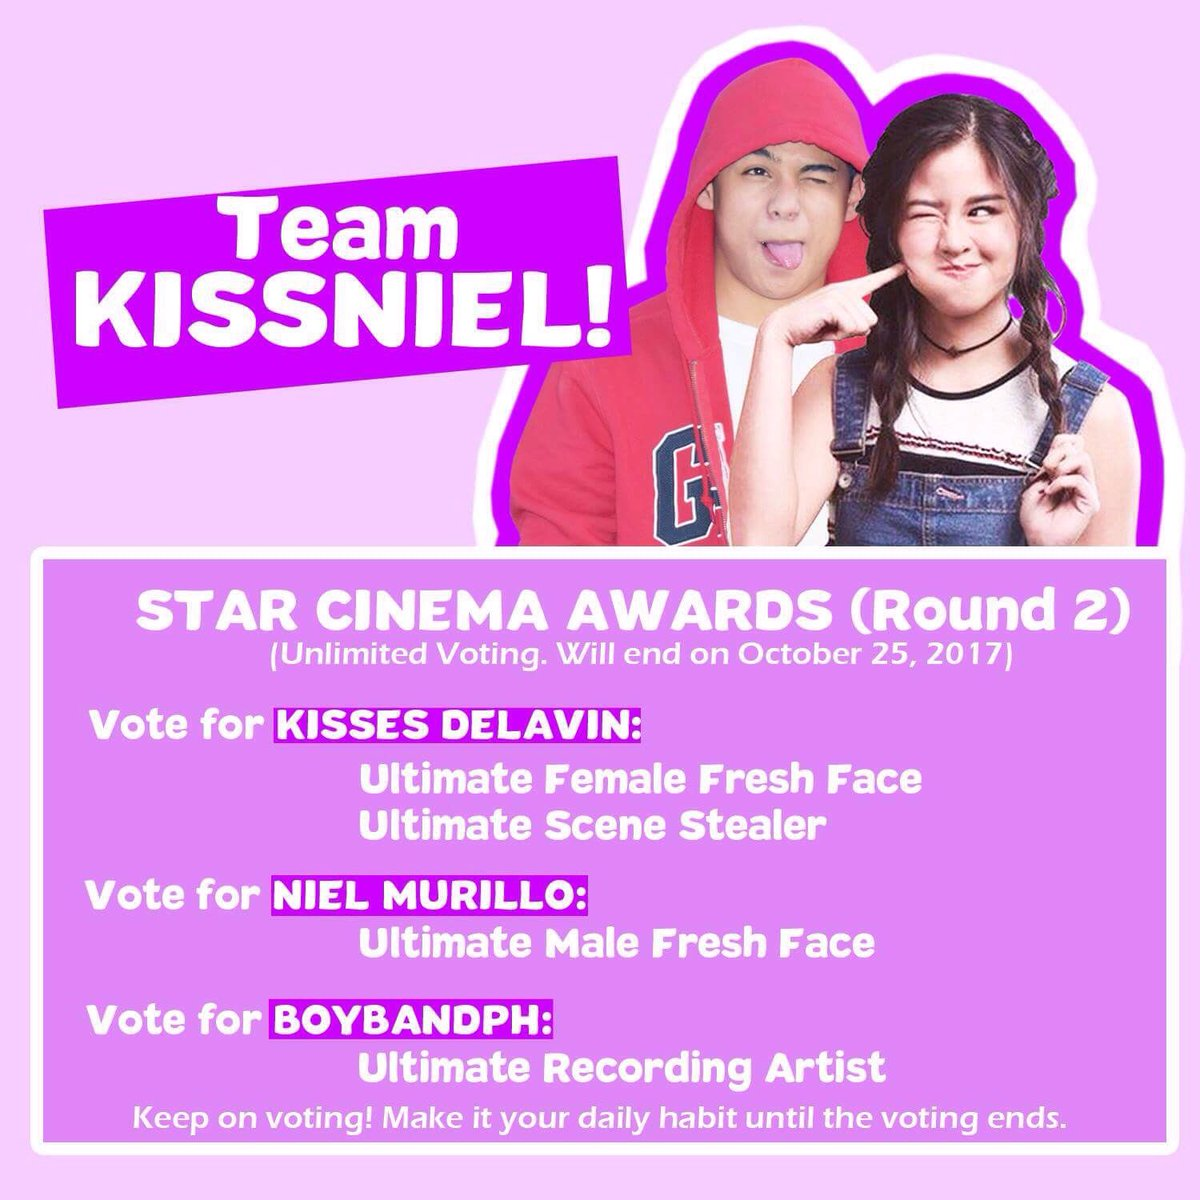 Kissniel official closed on twitter round 2 of voting in sca4 recording artist httpsstarcinemaabs cbn2017 1017newssca4 annual categories round 2 vote here 31548 picittergqfcgutk0c stopboris Gallery